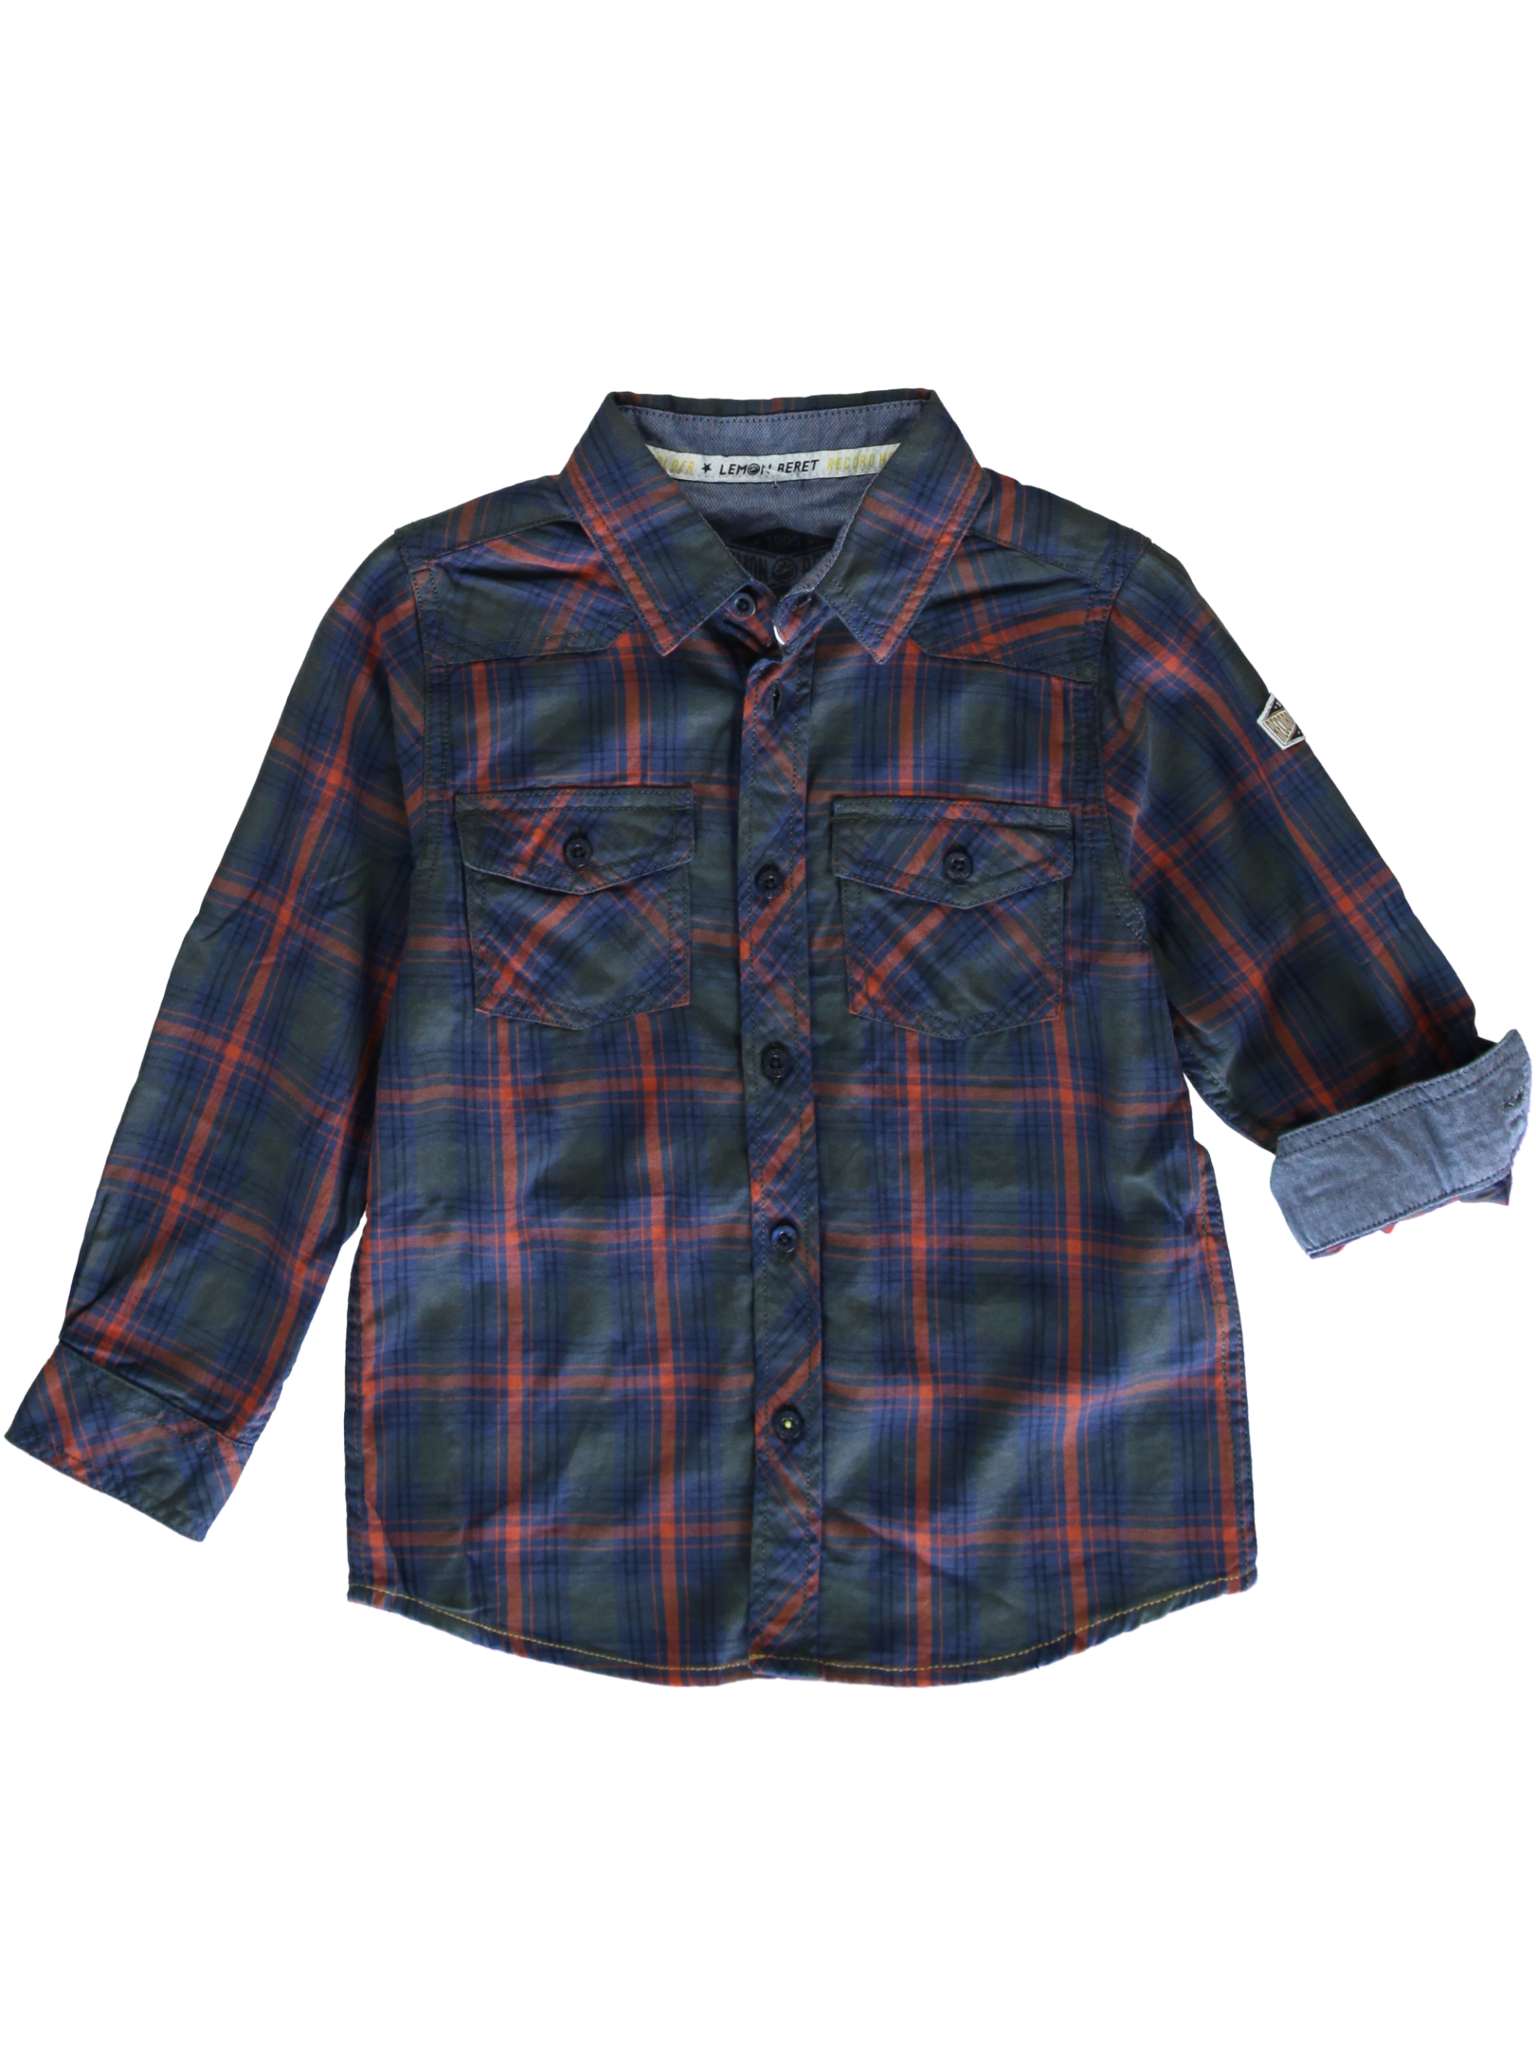 All Brands | Winterproducts Small Boys | Shirt | 10 pcs/box